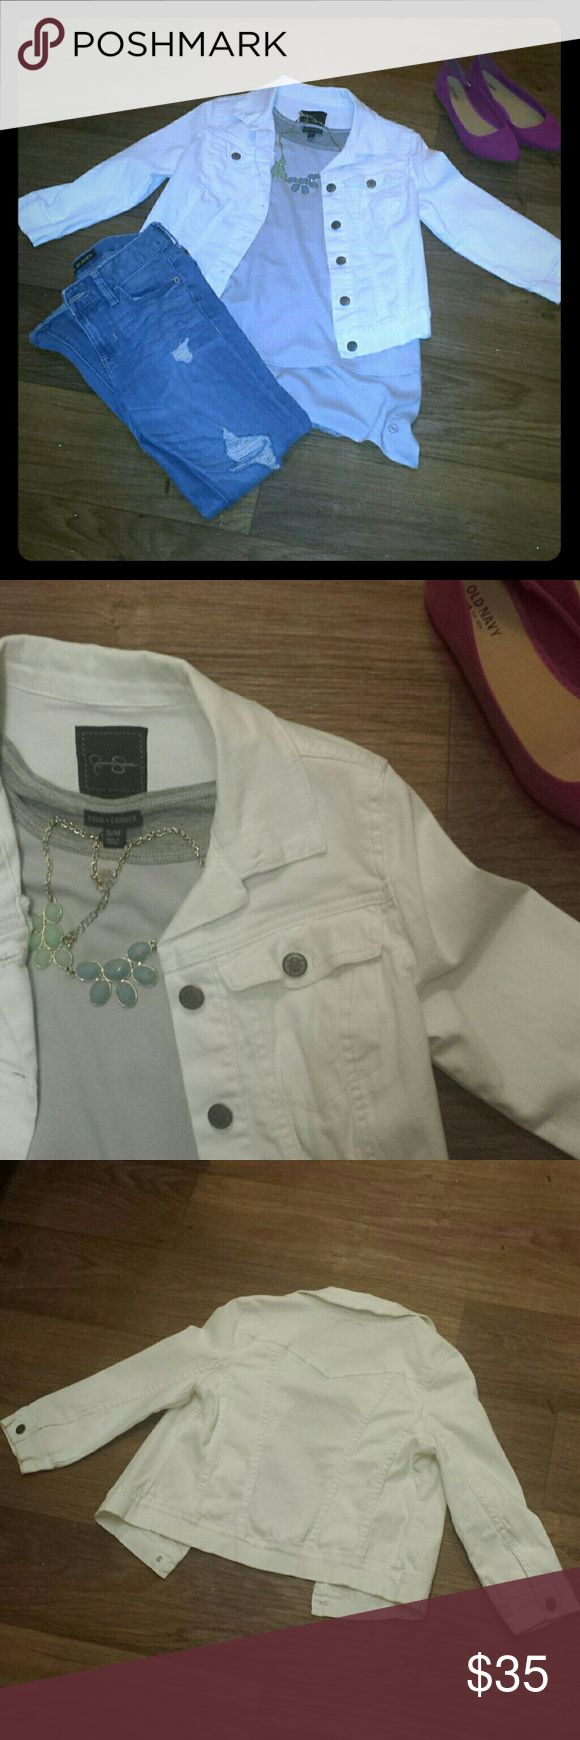 Jessica Simpson White Denim Jacket JS 3/4 Sleeve White Denim Jacket. Collared, Button Down Front, Breast Pockets, Machine Wash, Cotton/Spandex. Only worn once or twice. Perfect, Basic item you need in your wardrobe!!!! Jessica Simpson Jackets & Coats Jean Jackets